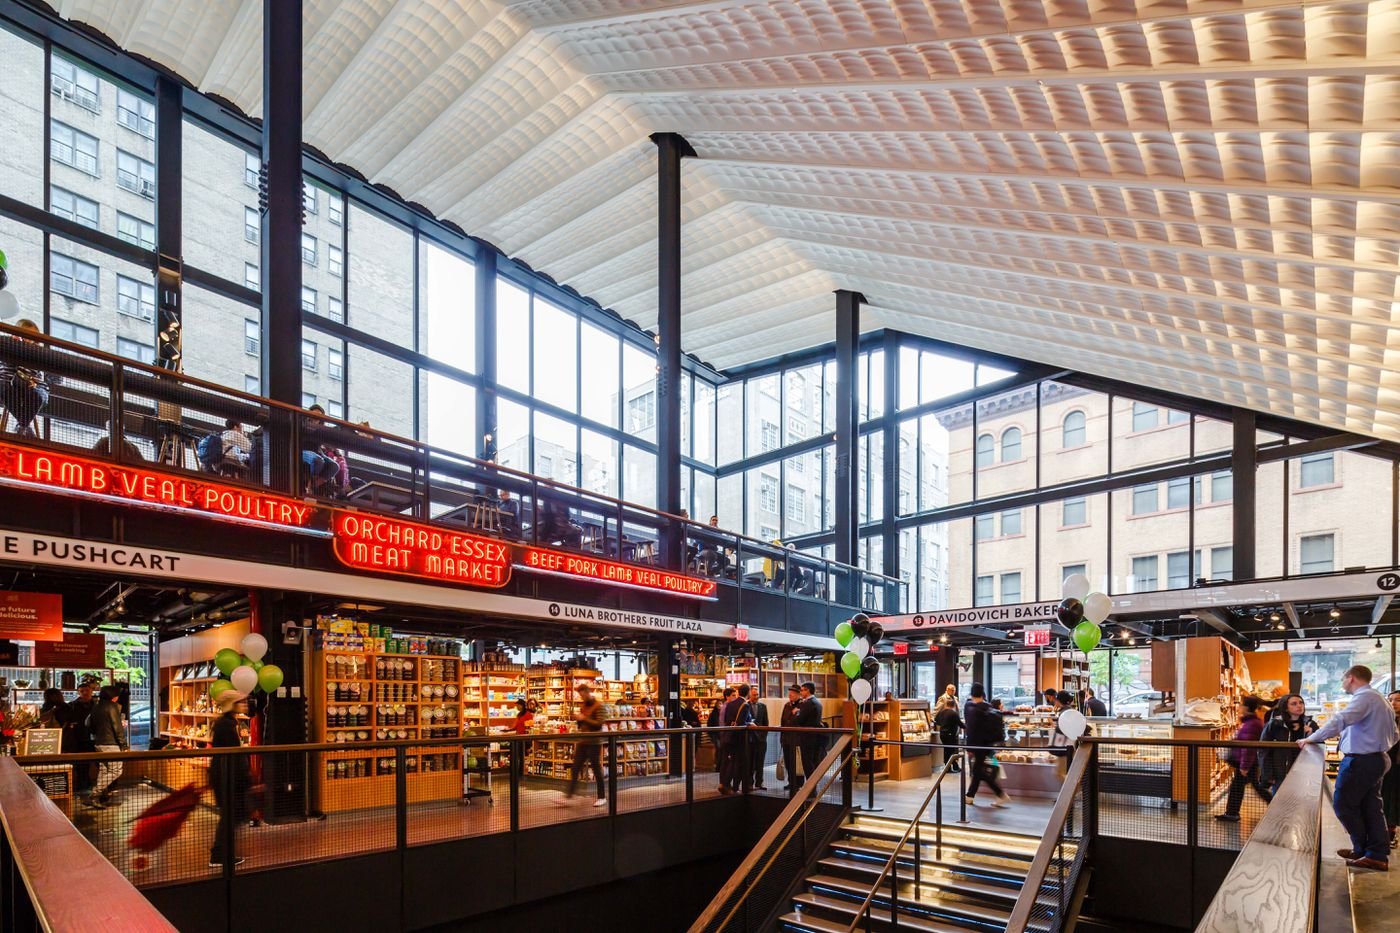 New York's new malls: Hudson Yards, Empire Outlets, and more